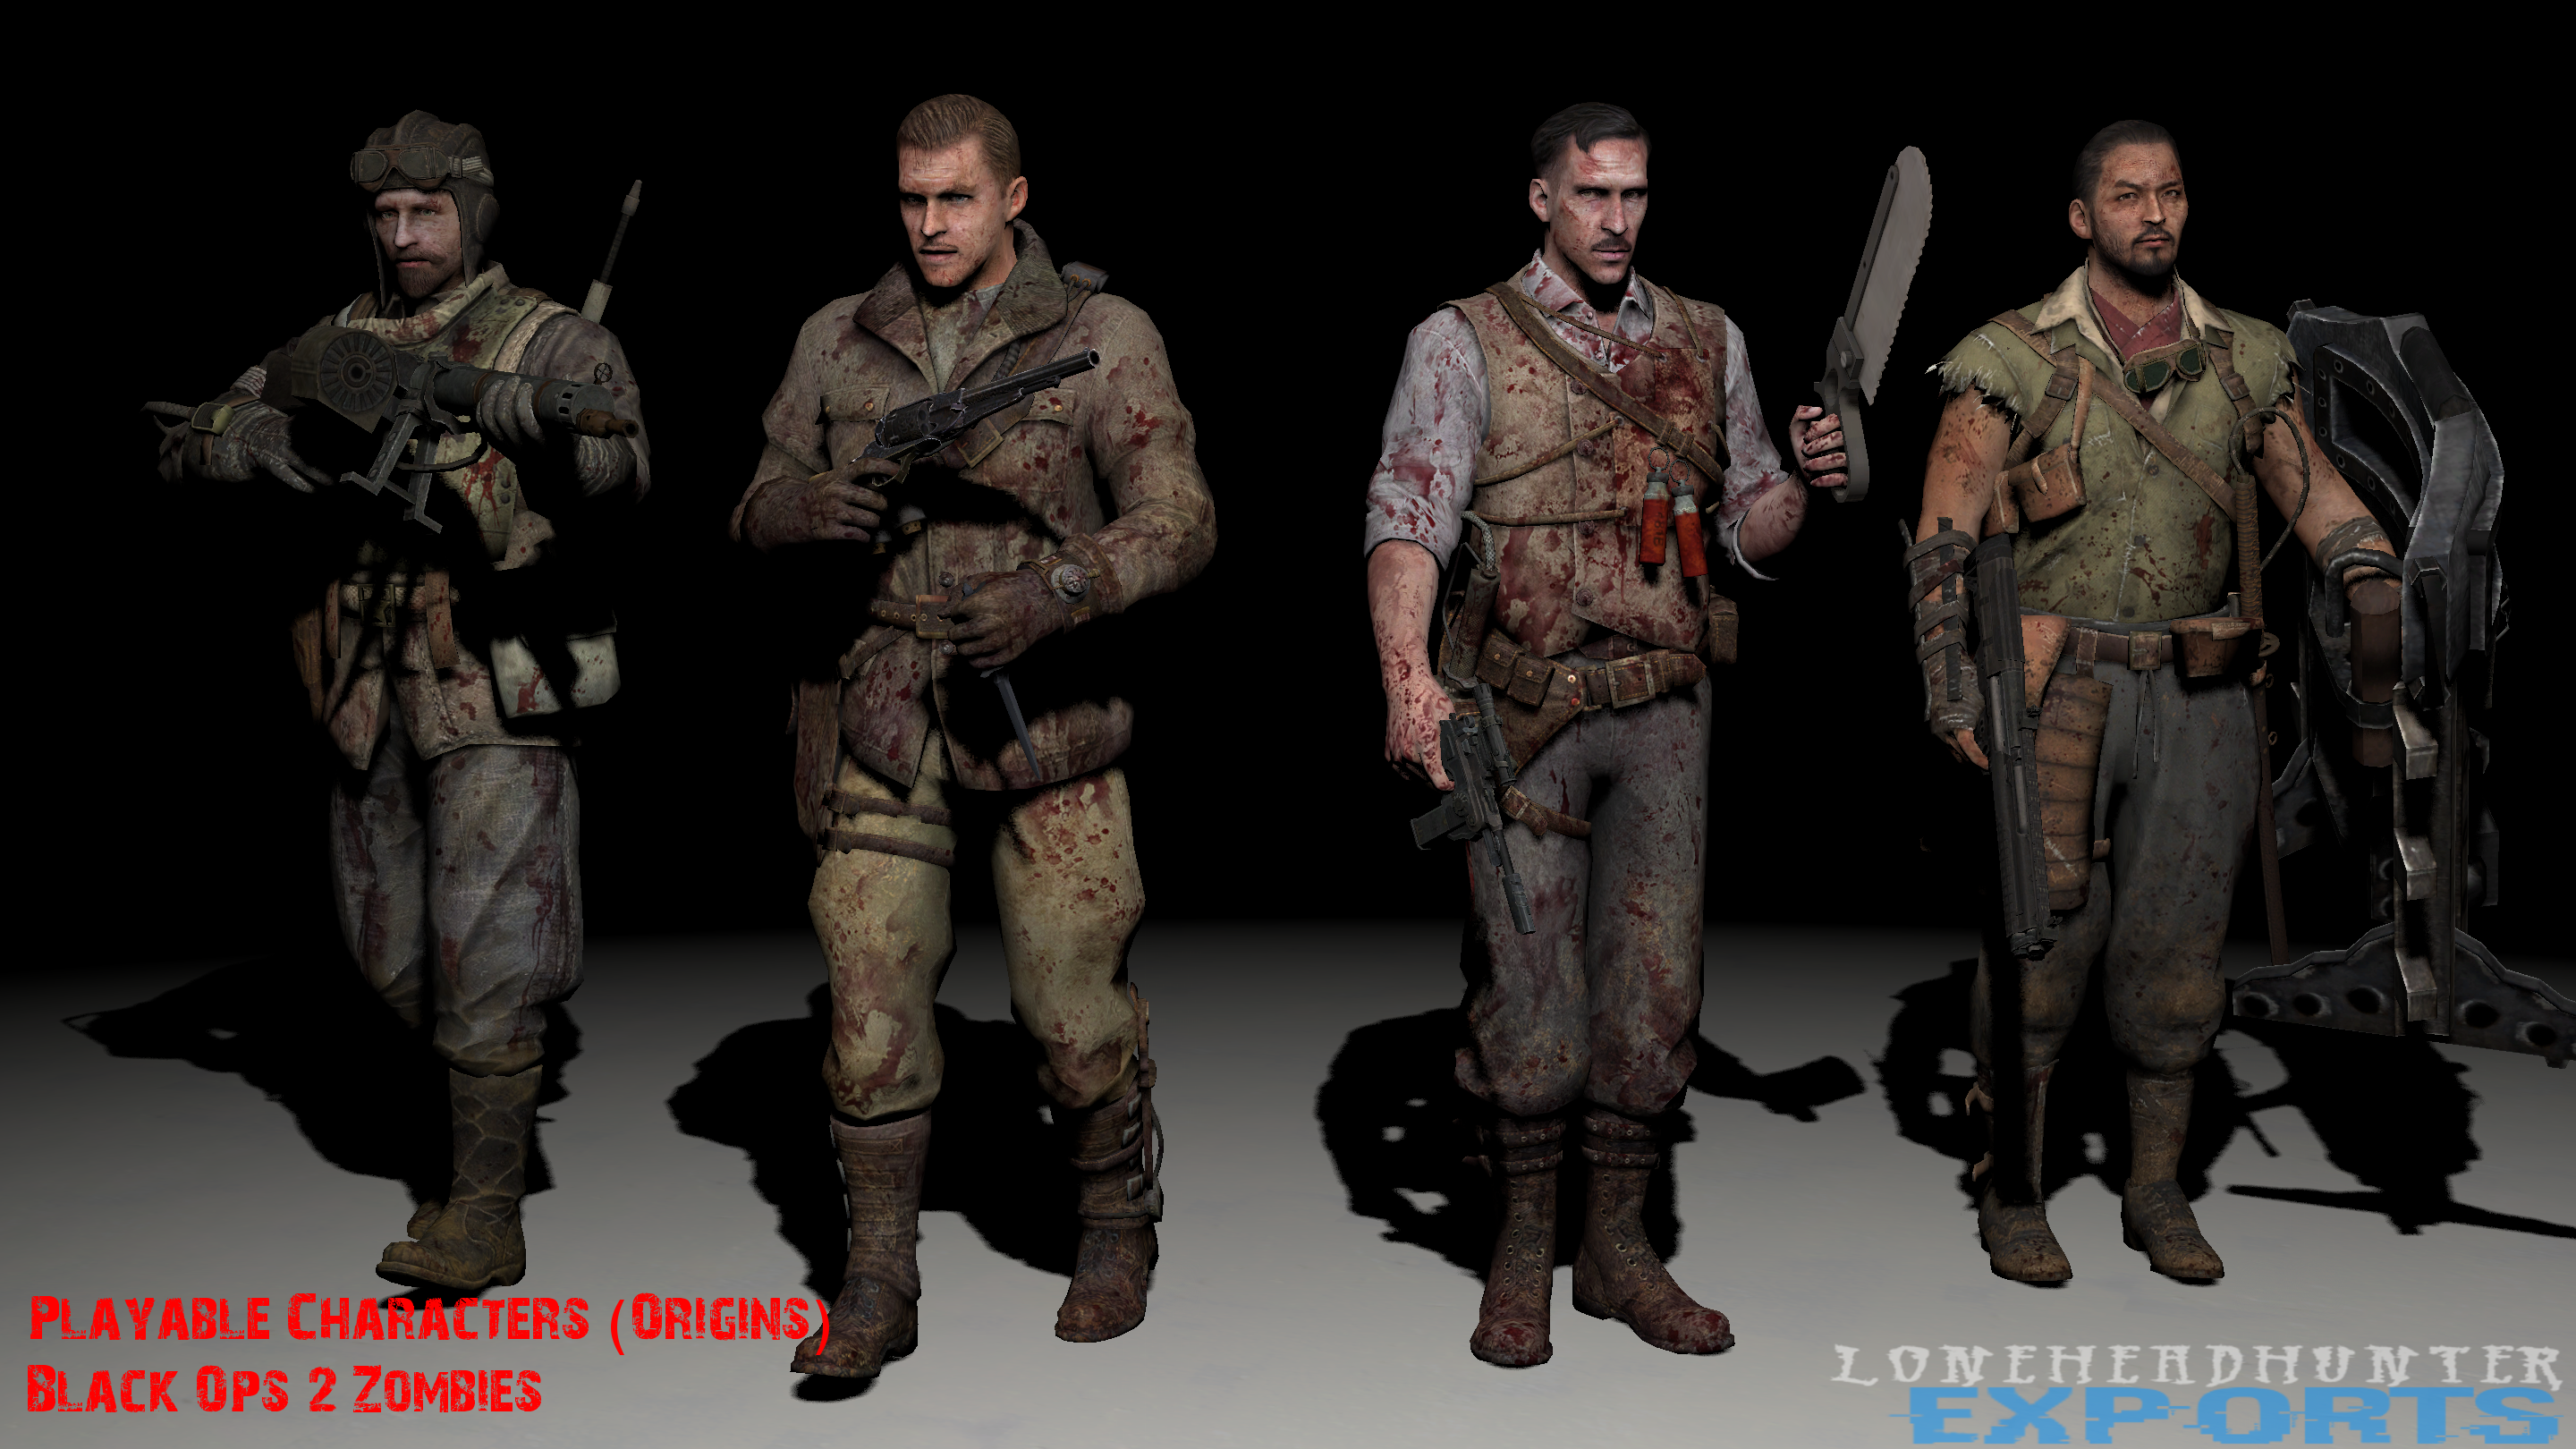 Cod Zombies Waw Cast Over Anyone Super Smash Bros Wii U